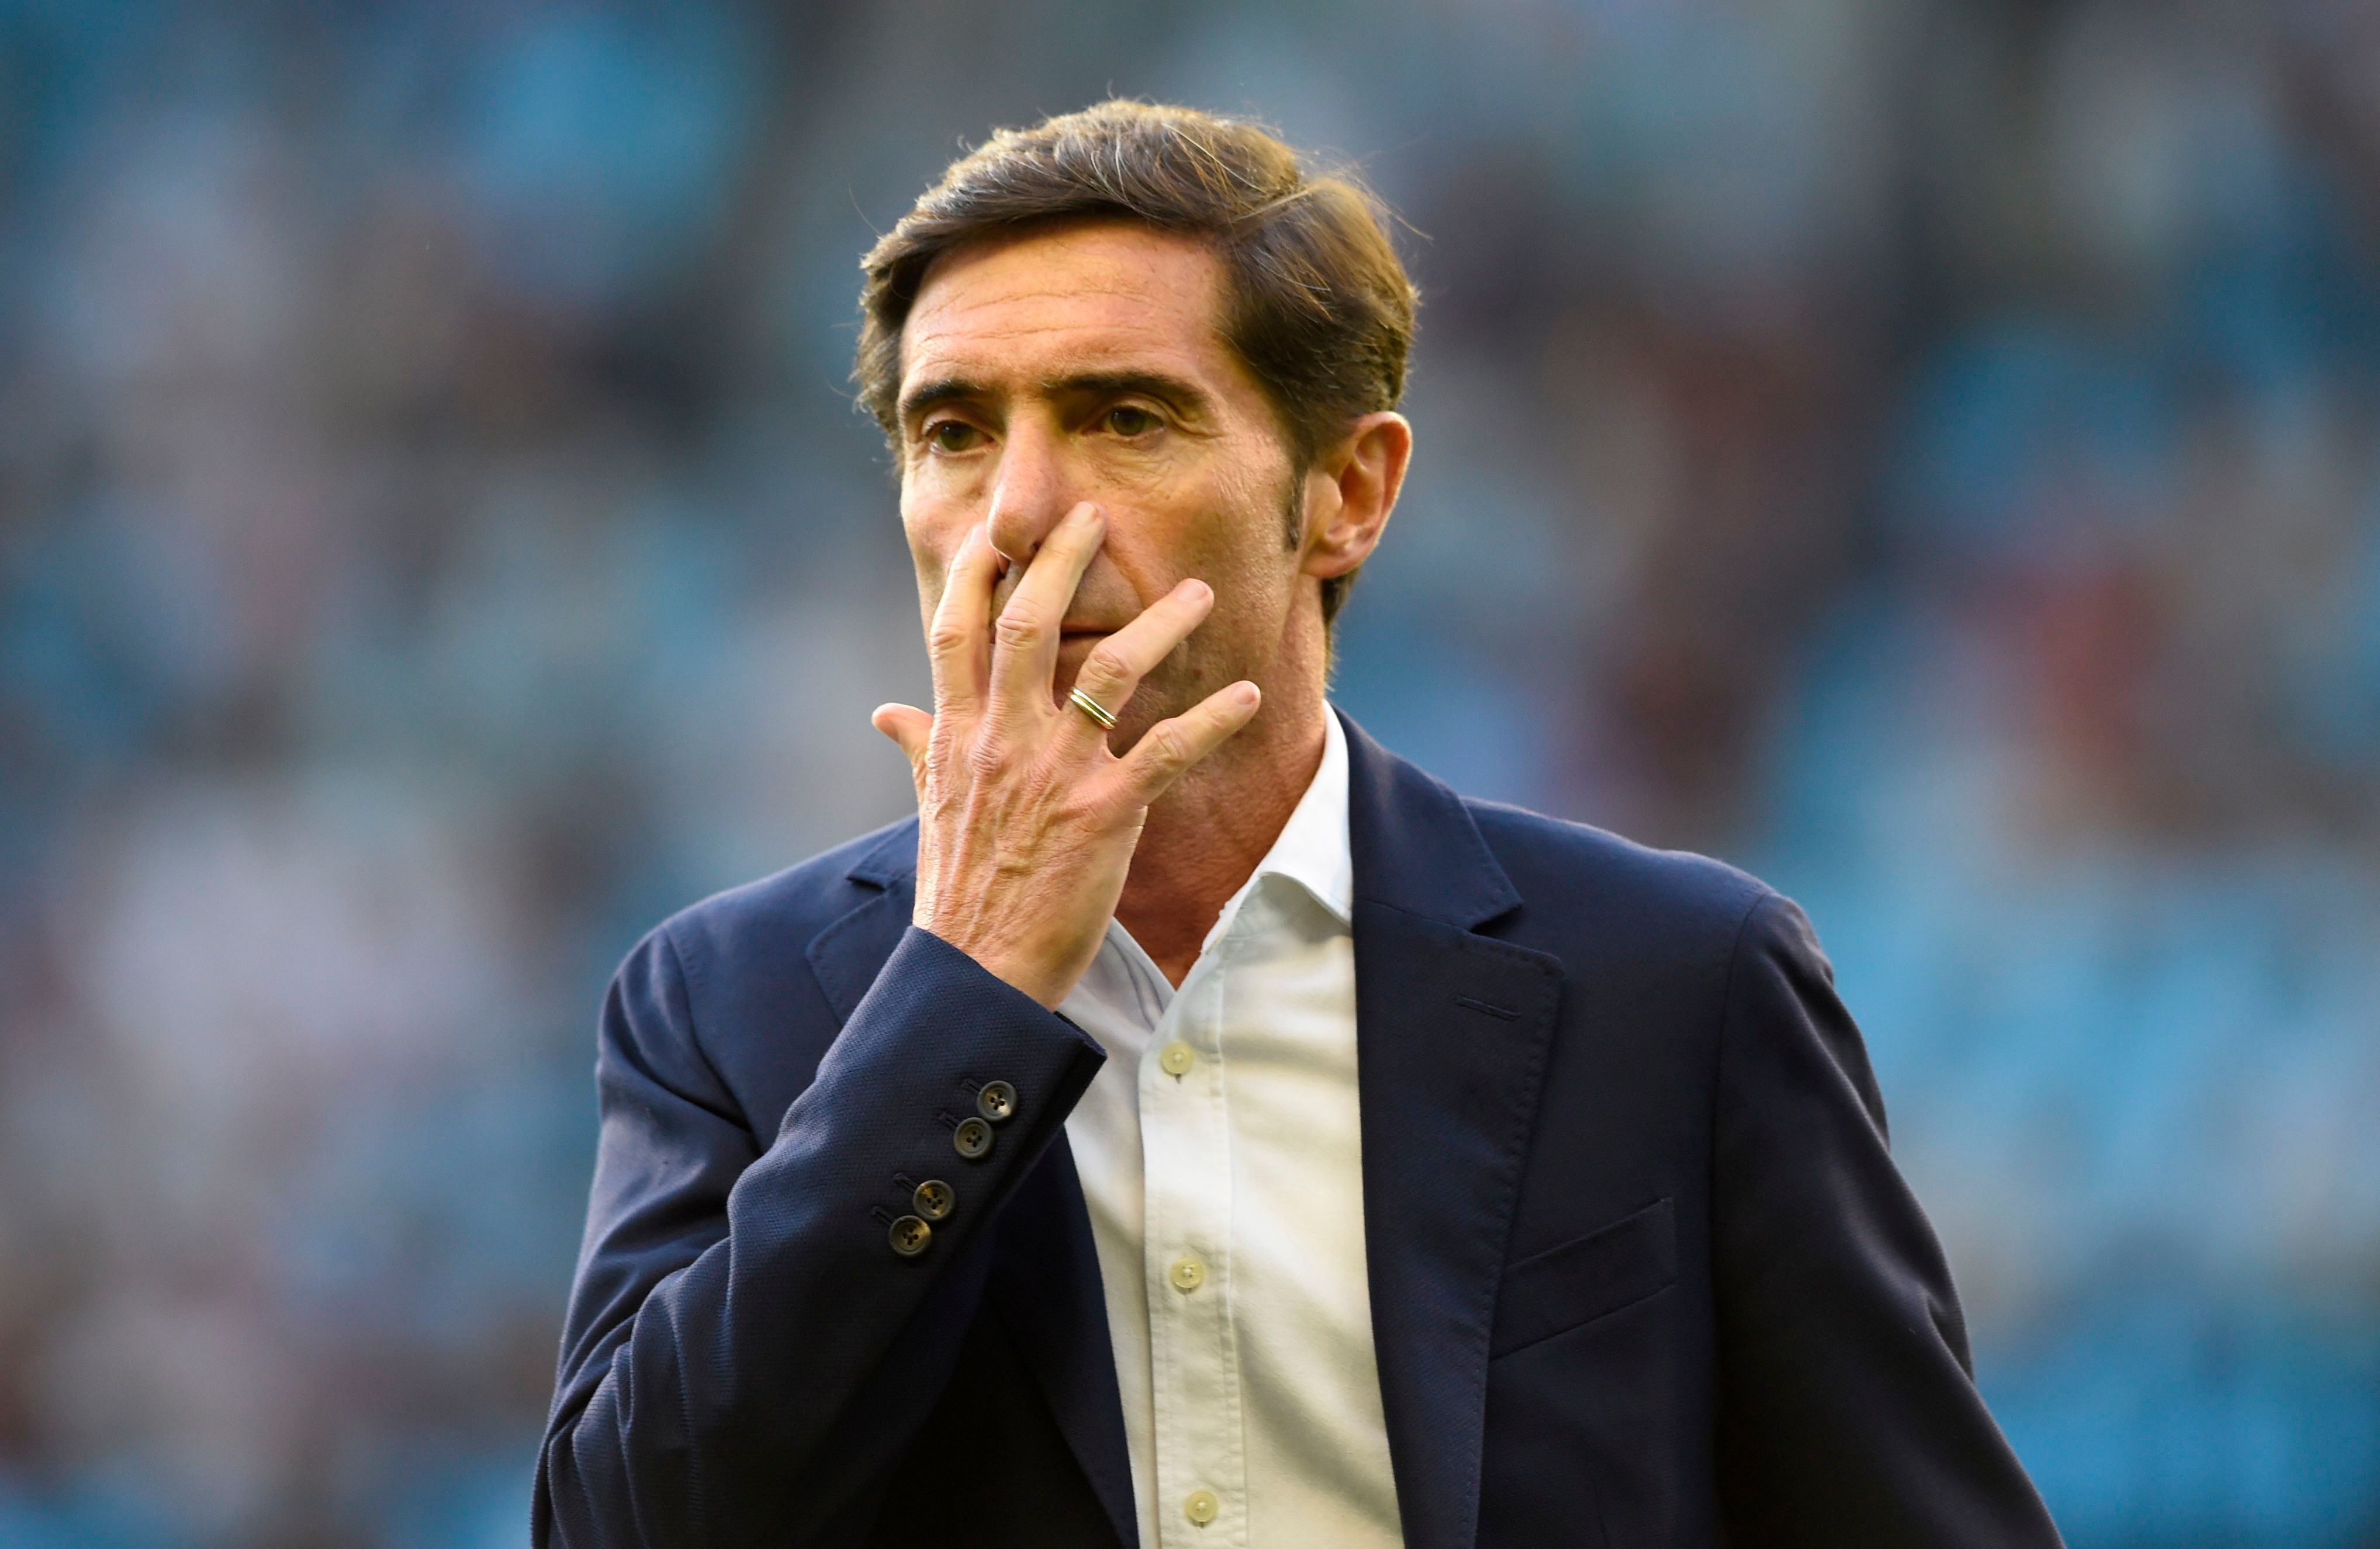 Marcelino's departure from Valencia has angered fans and players alike